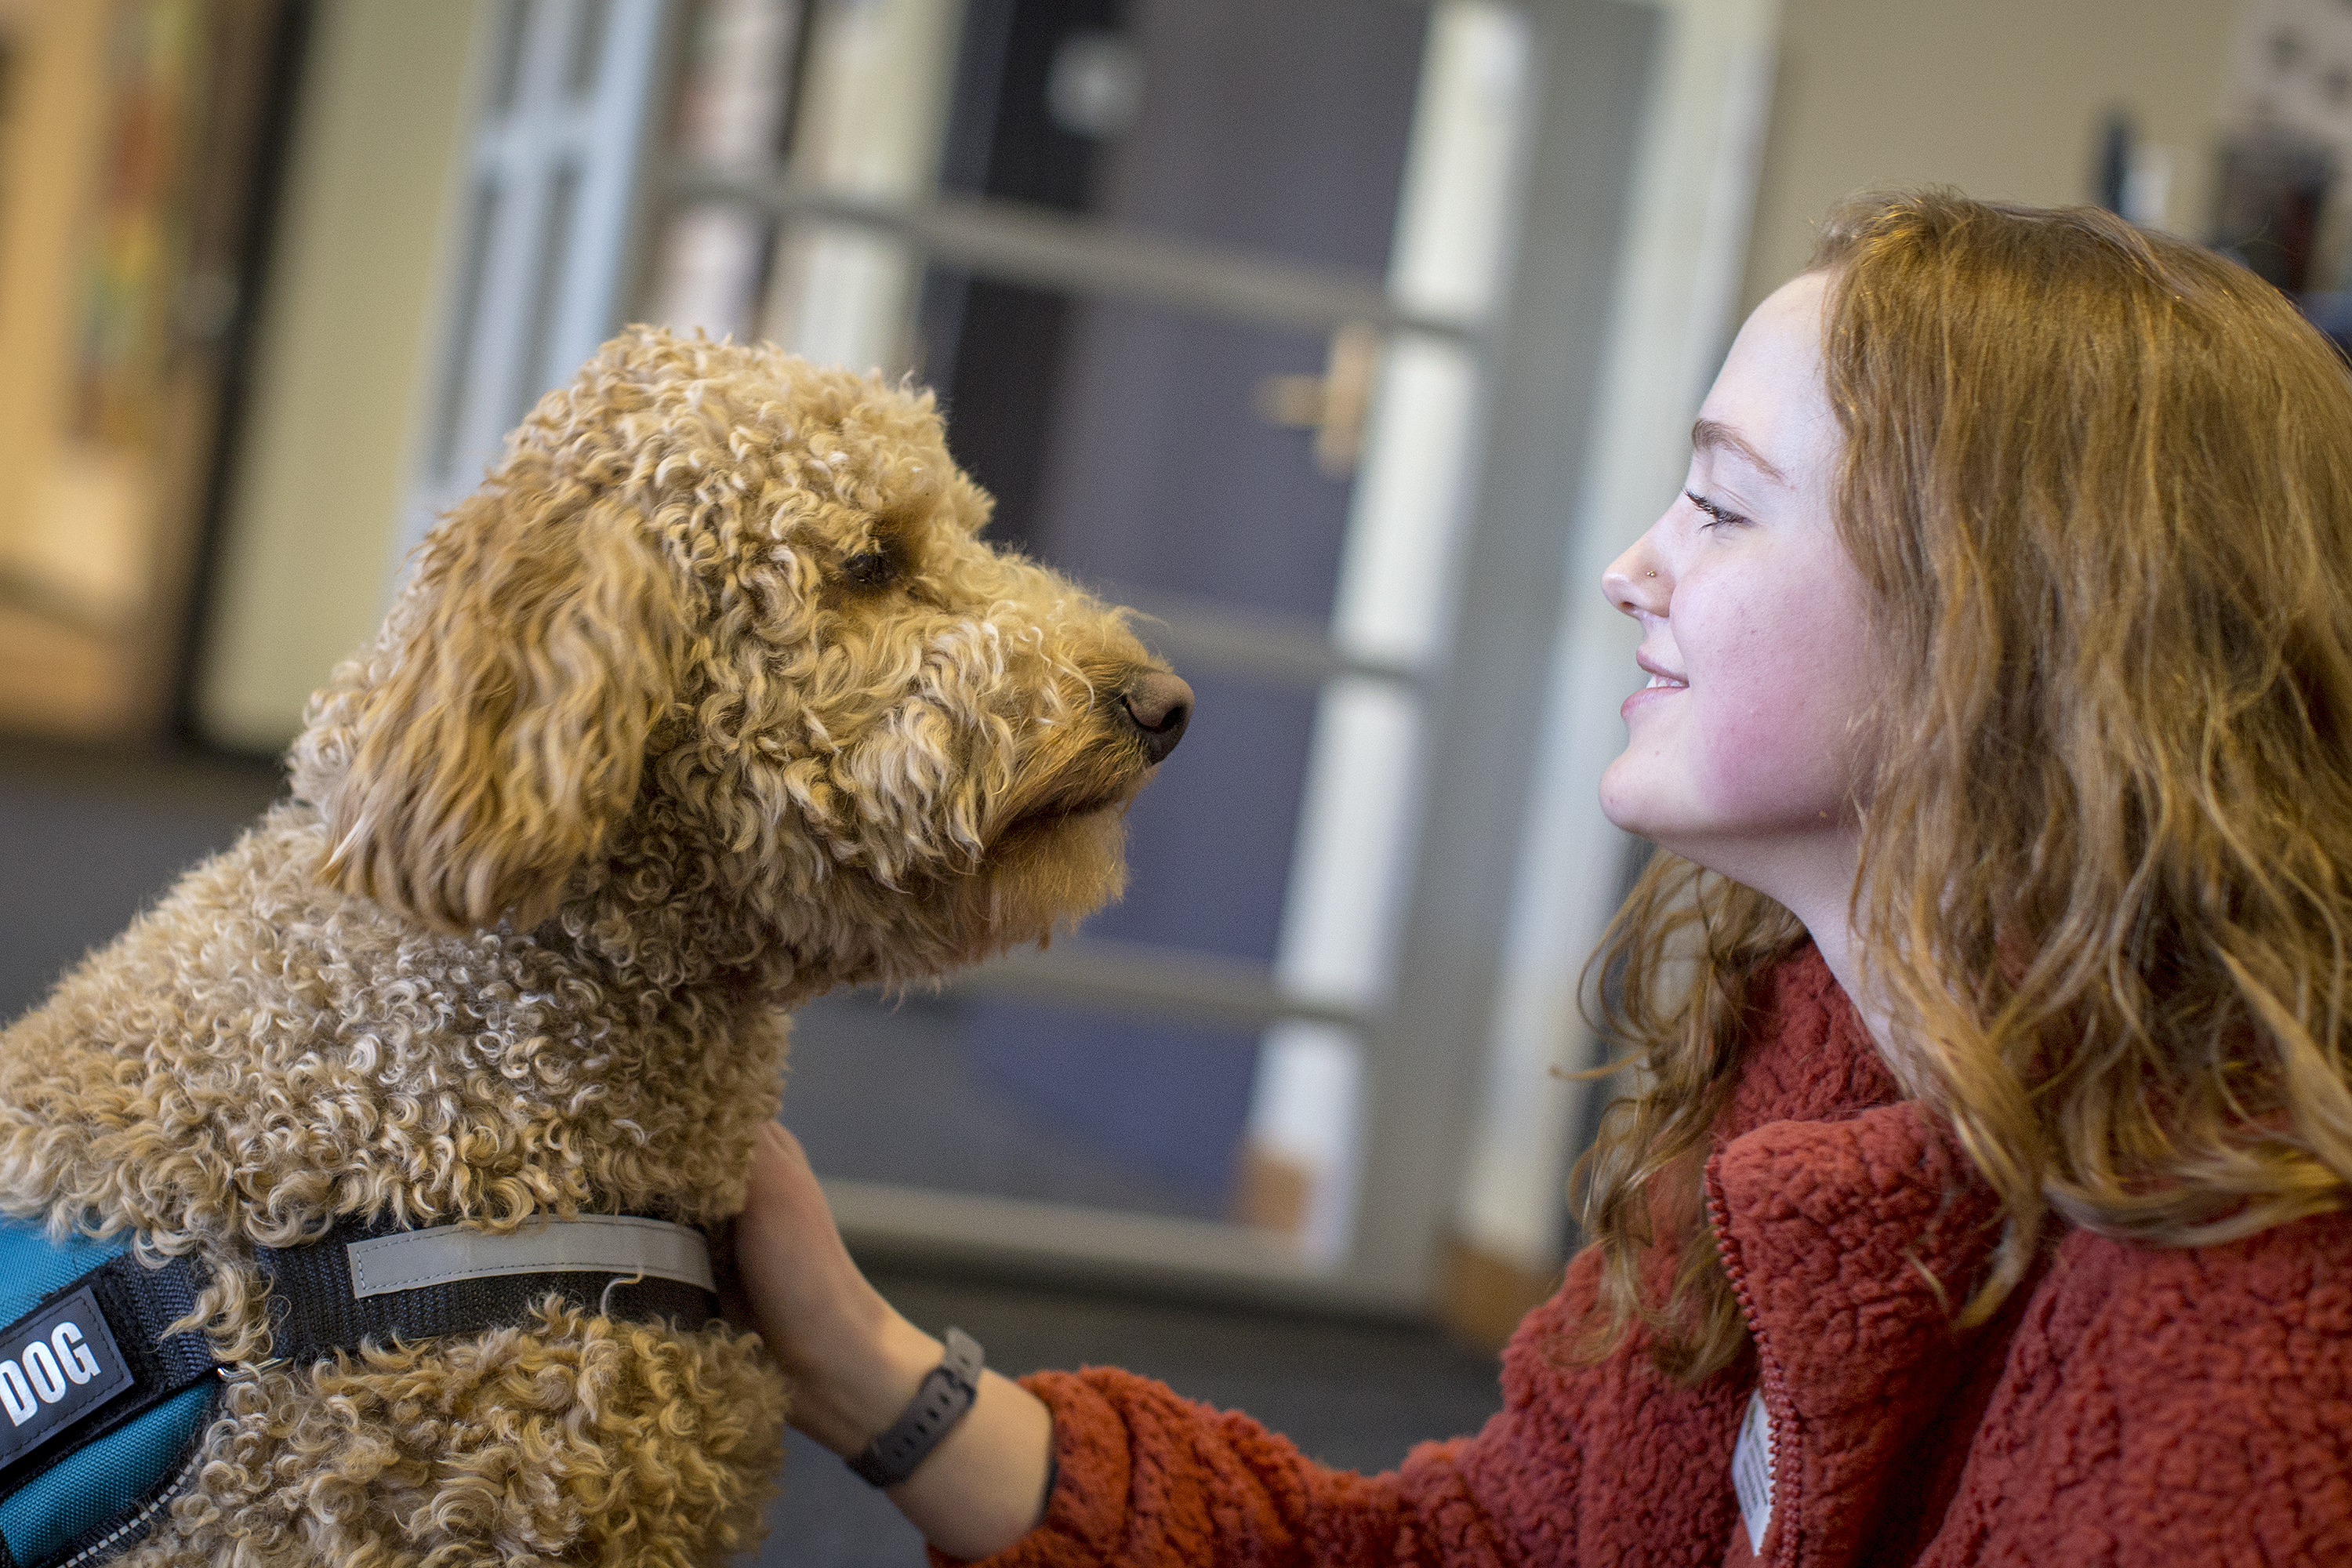 Photo: Therapy Dogs CU Boulder Norlin Library 8 20181211